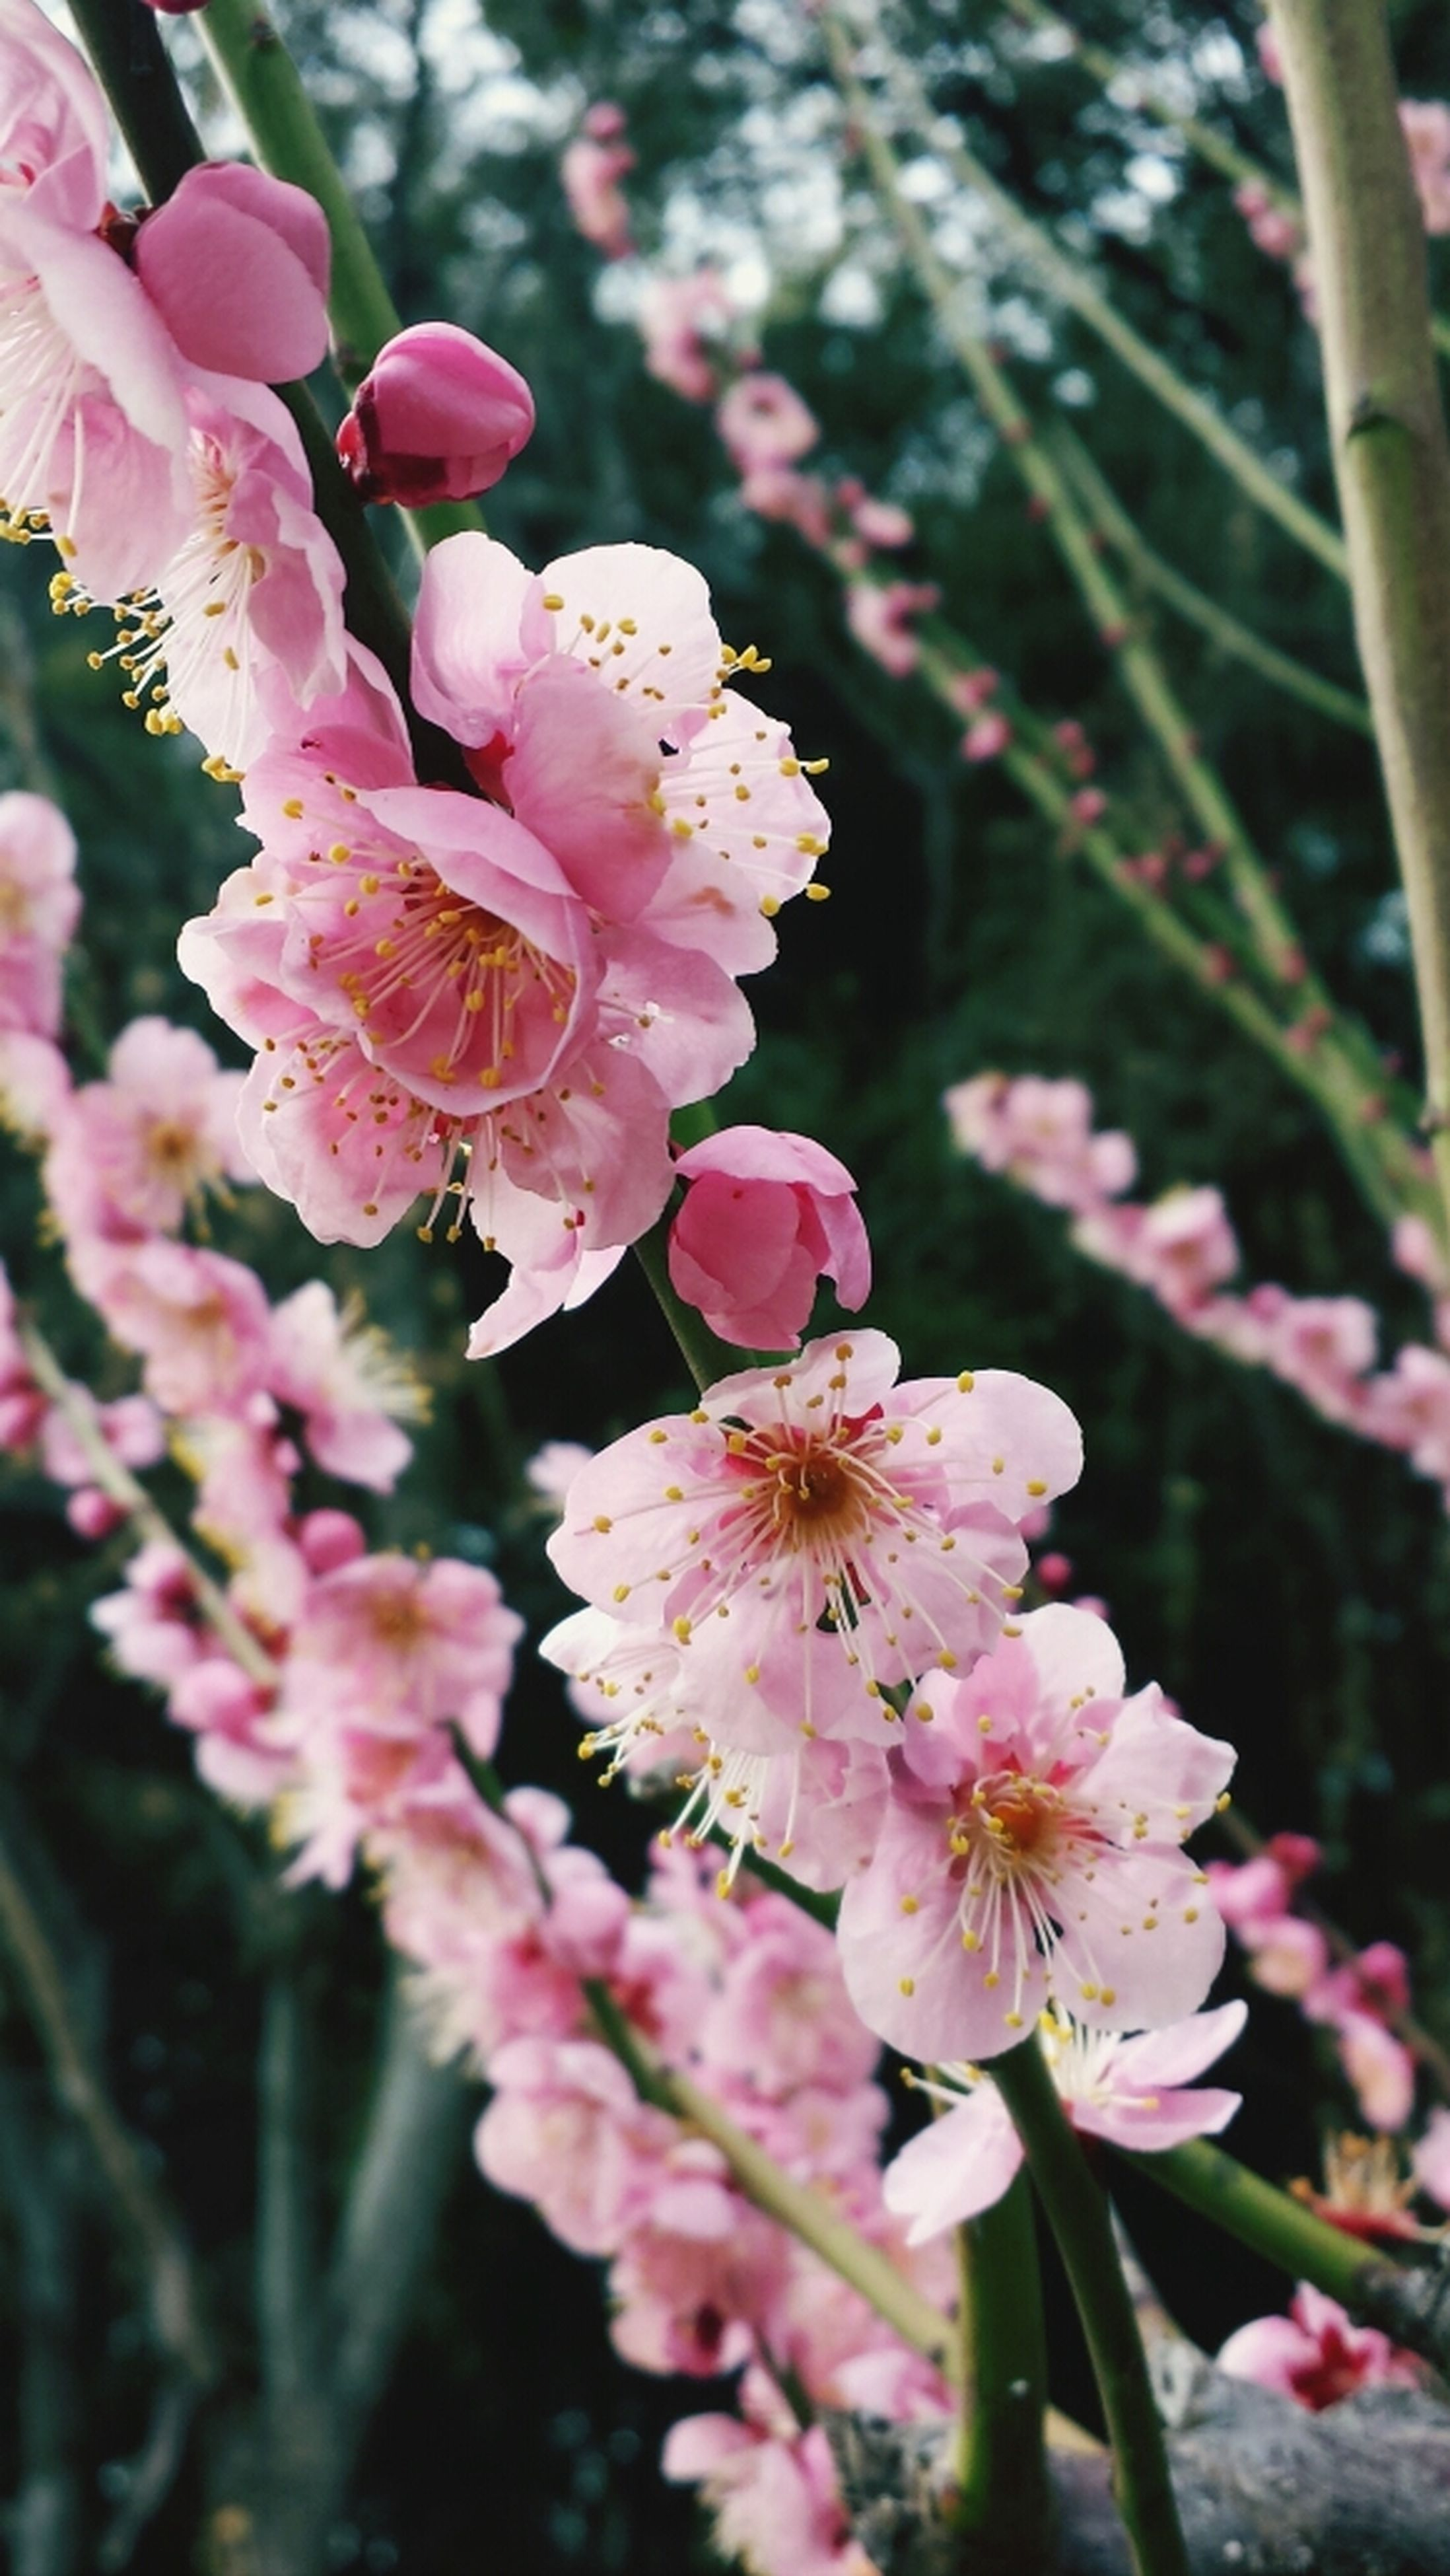 flower, freshness, fragility, growth, petal, beauty in nature, pink color, focus on foreground, close-up, nature, flower head, blooming, branch, blossom, in bloom, plant, springtime, twig, tree, outdoors